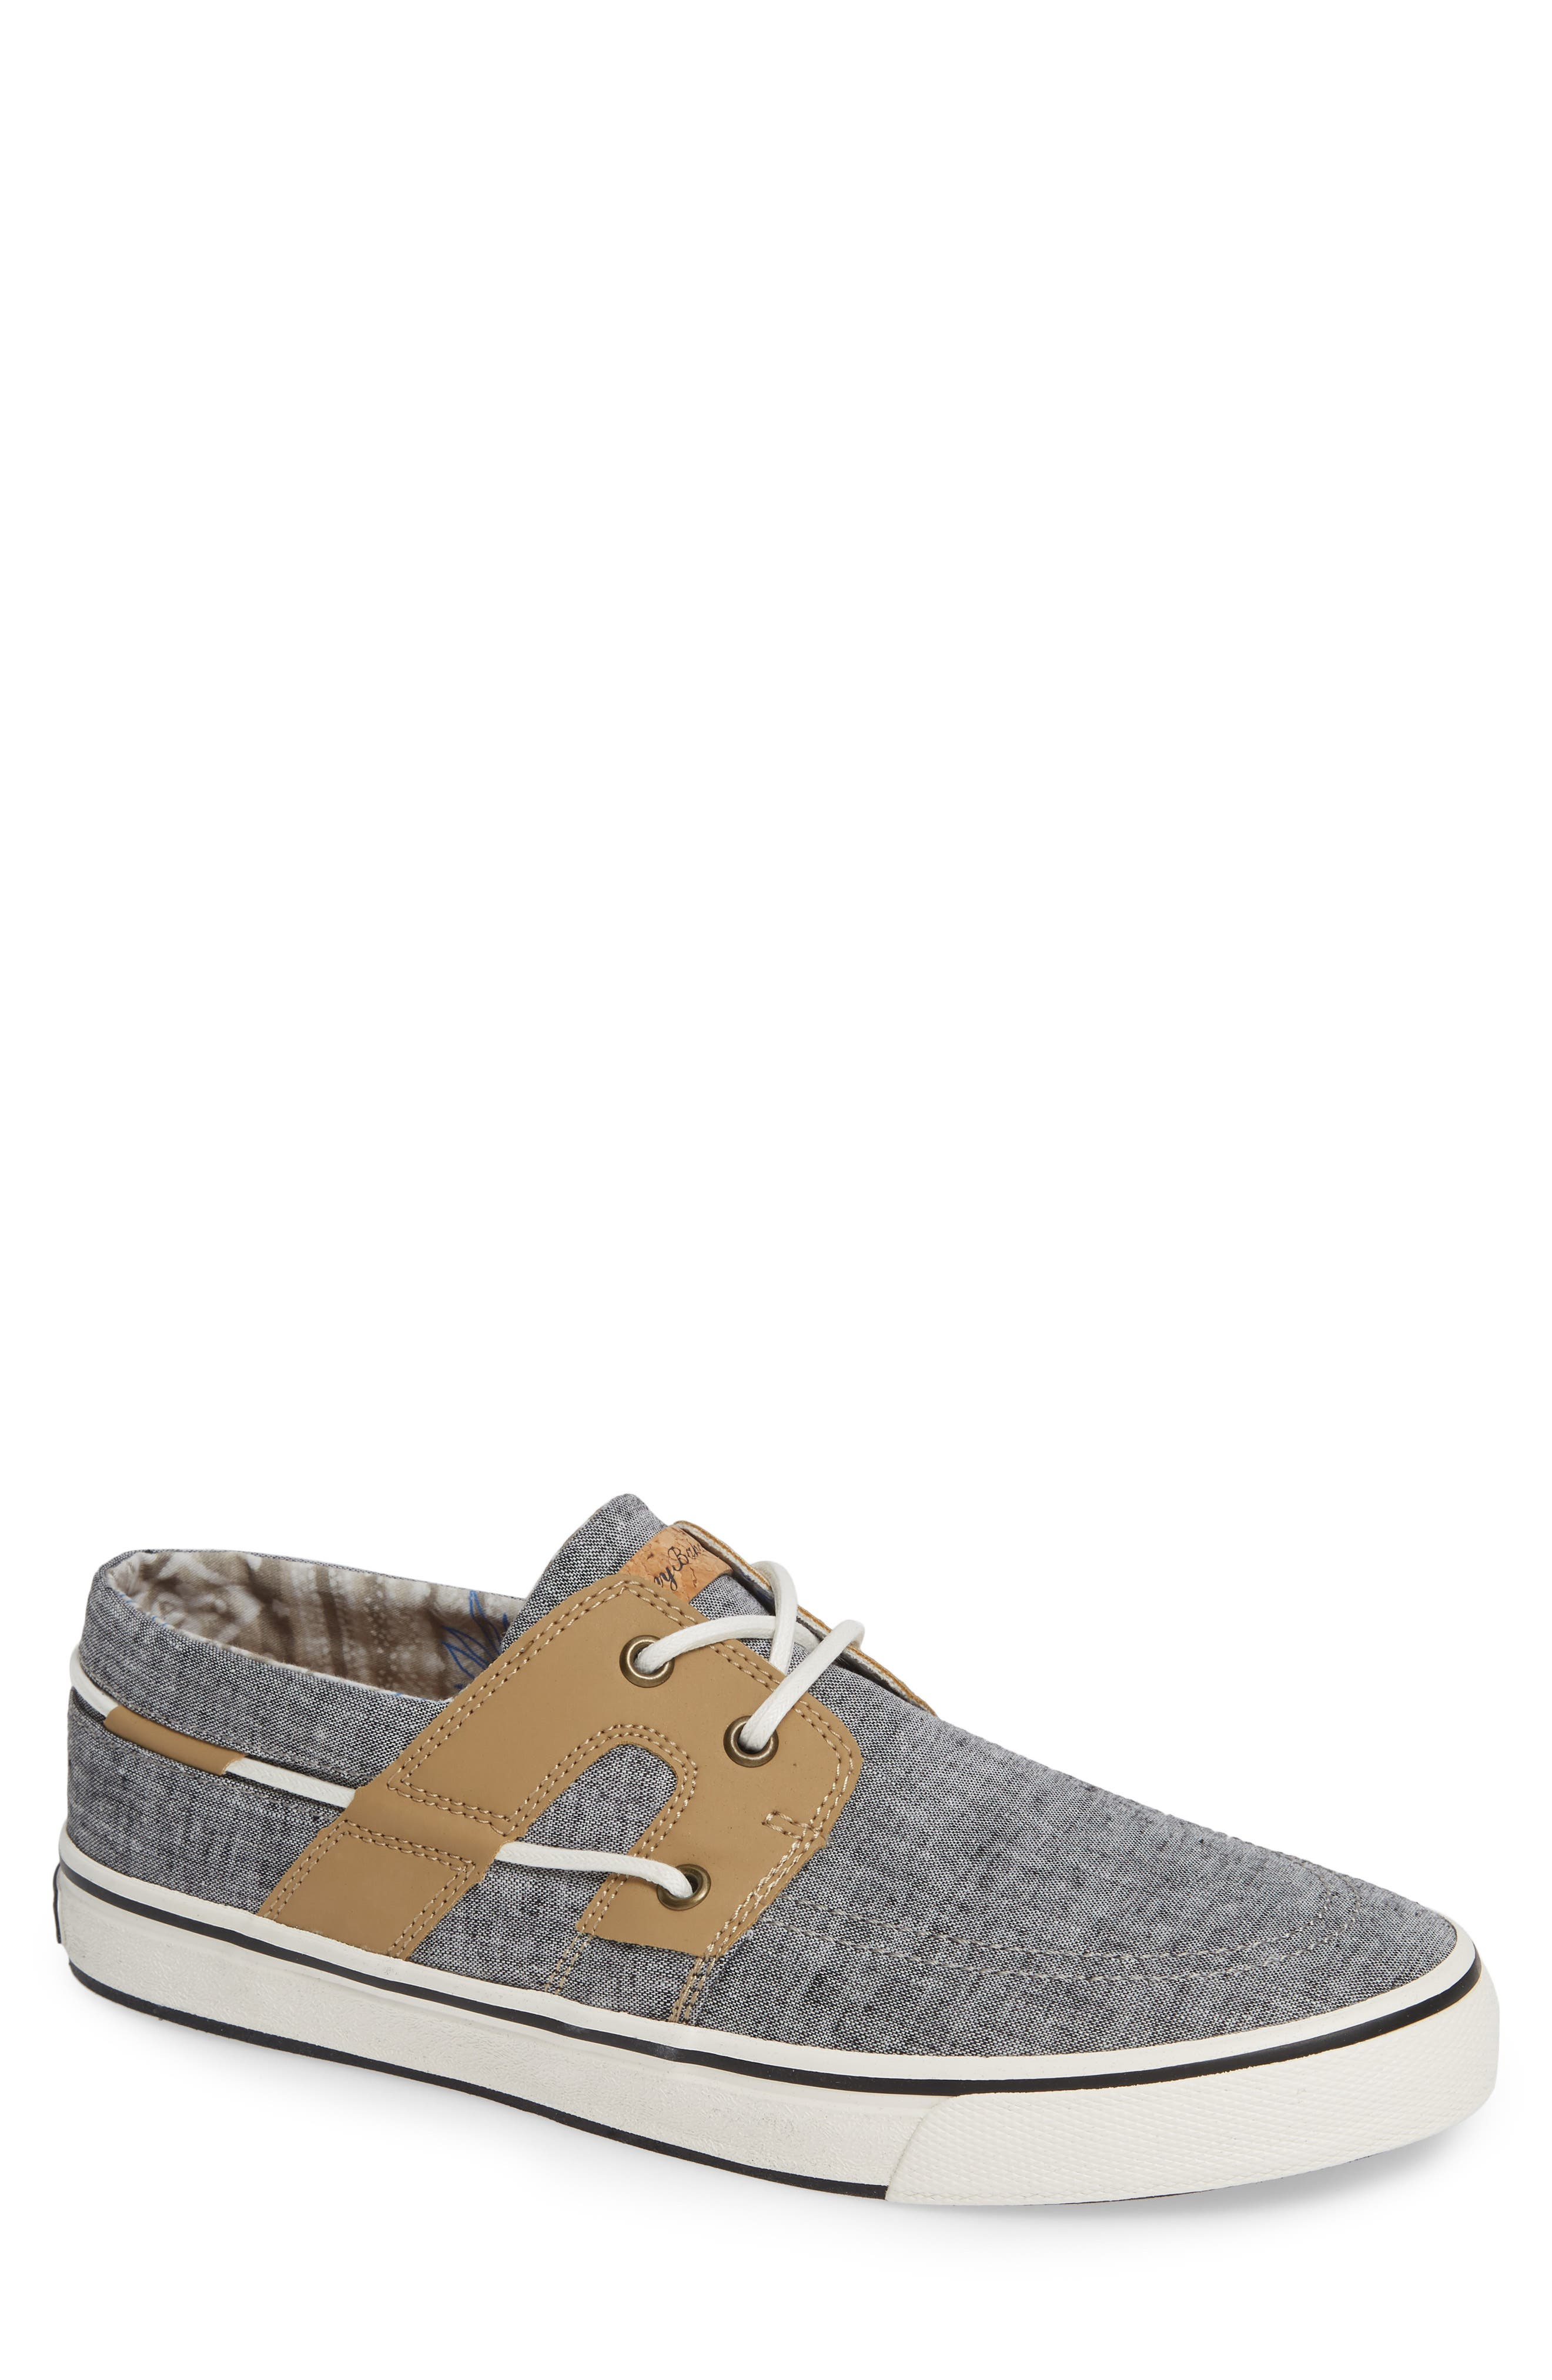 TOMMY BAHAMA Stripe Breaker Sneaker, Main, color, BLACK CHAMBRAY